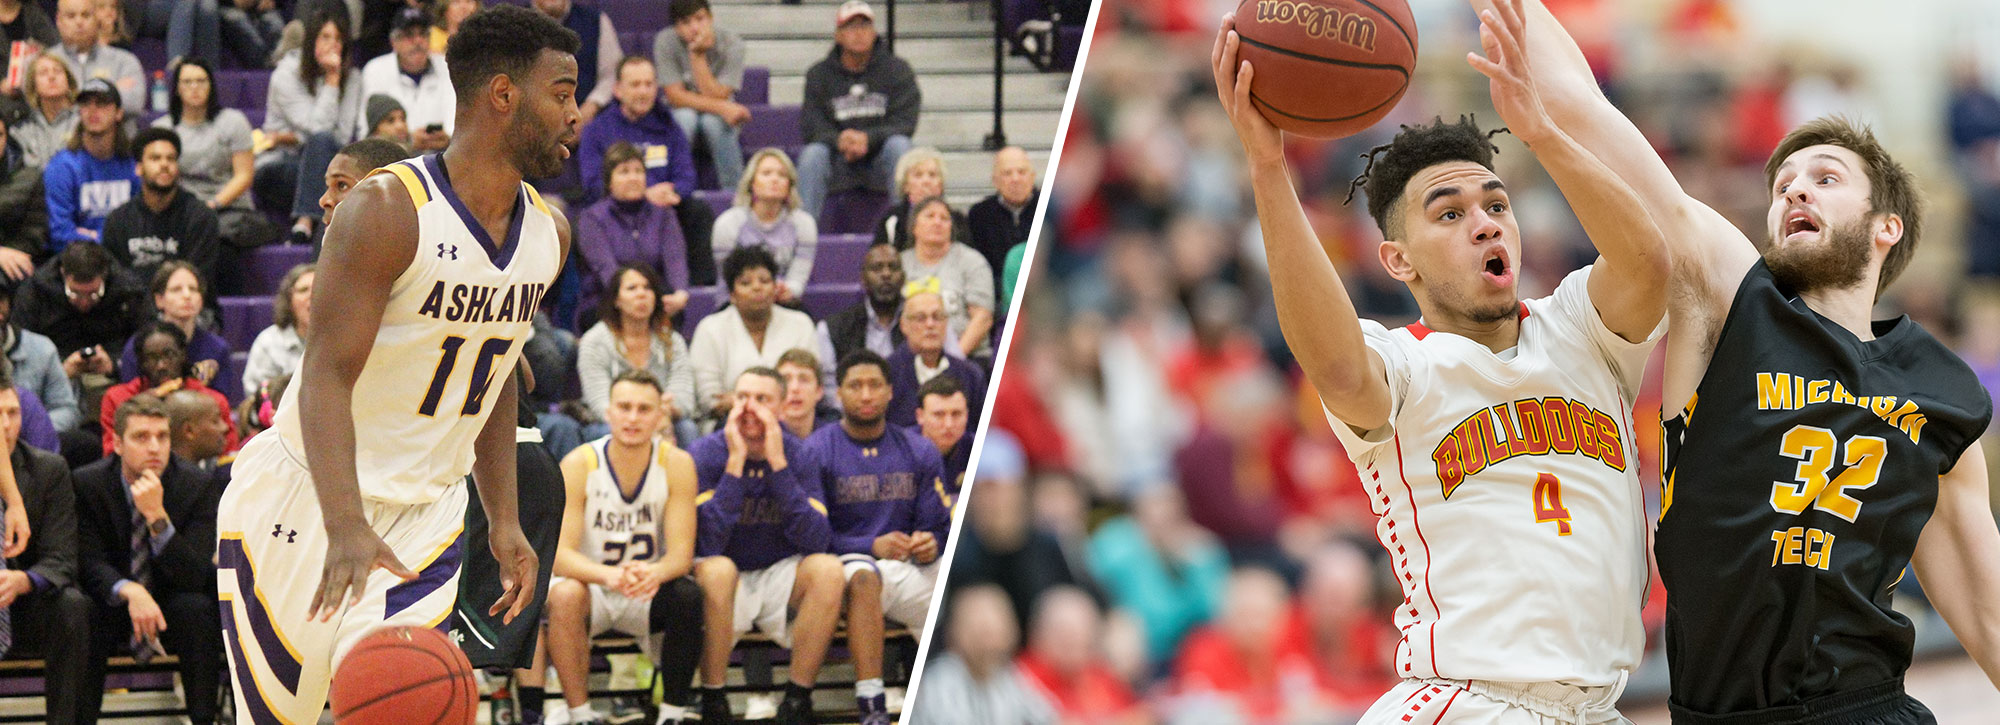 Ashland's Davis, Ferris State's Cushingberry Claim GLIAC Men's Hoops Weekly Honors